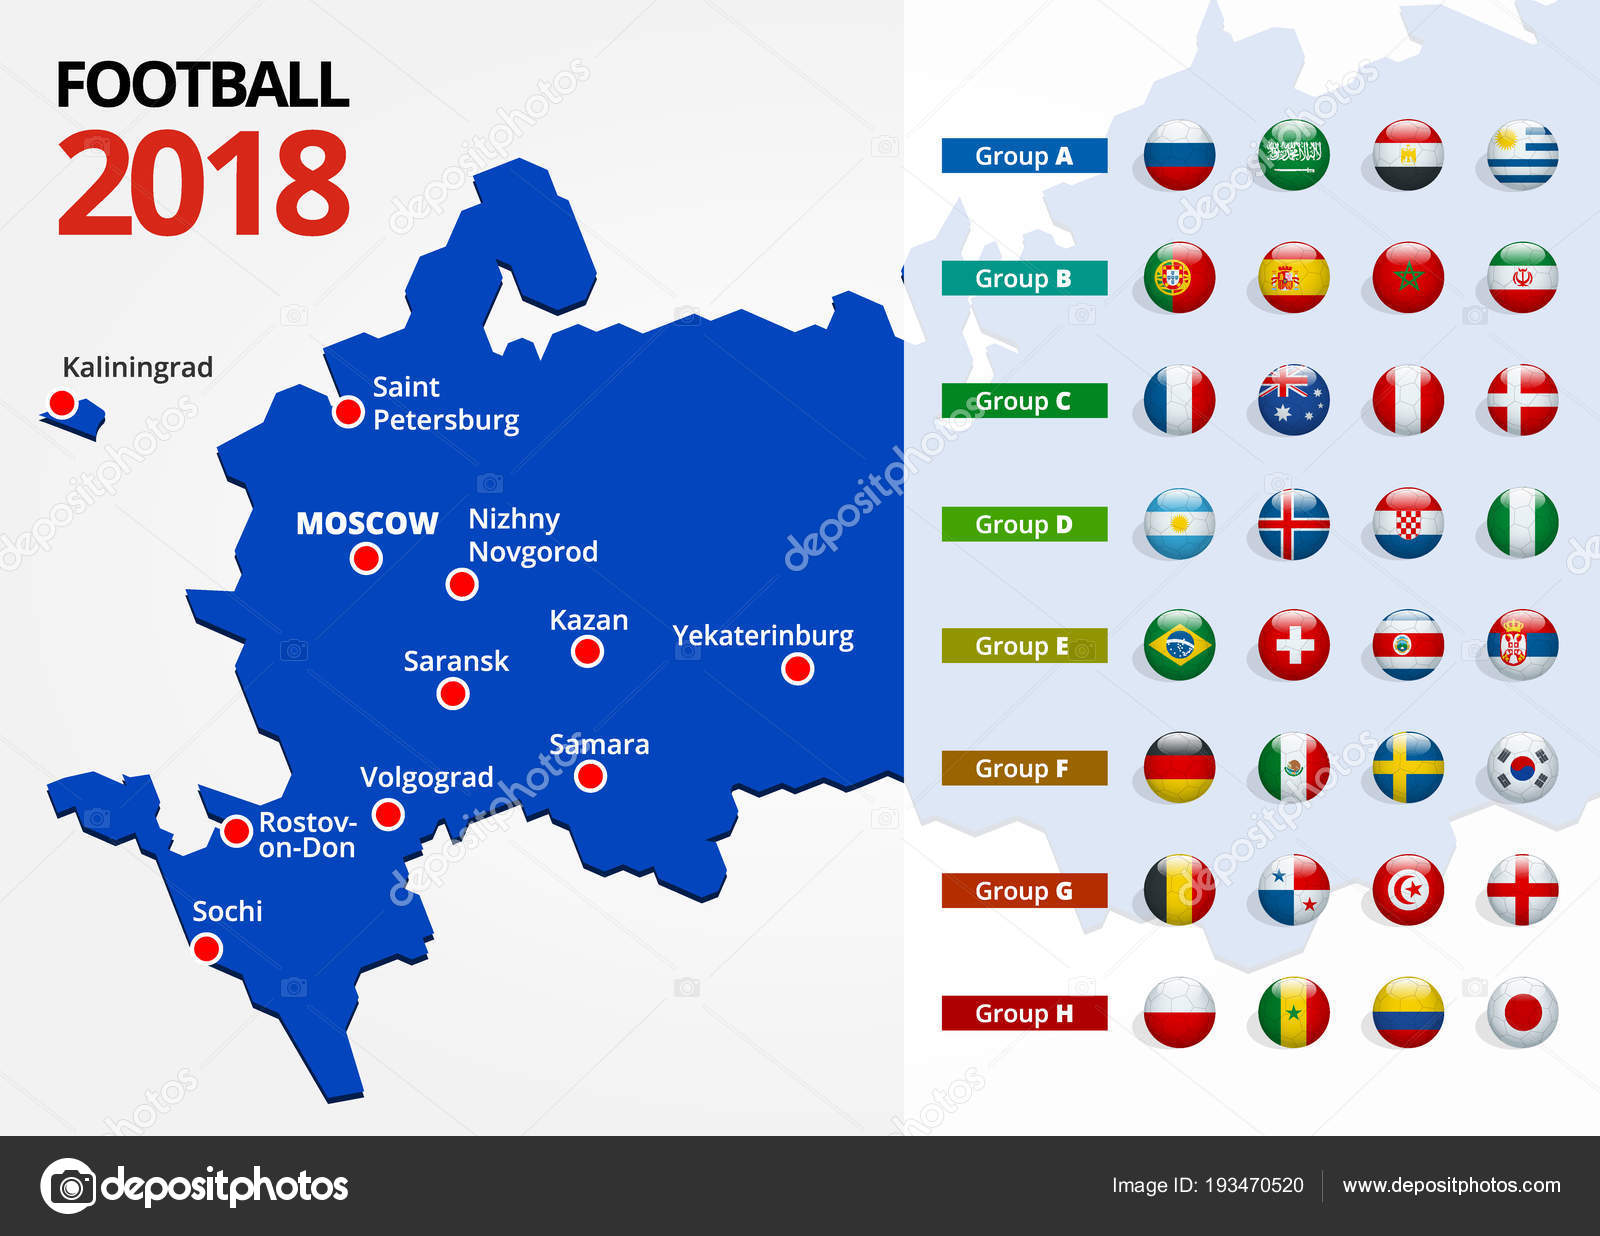 Football 2018 Europe Qualification All Groups And Map With Russian